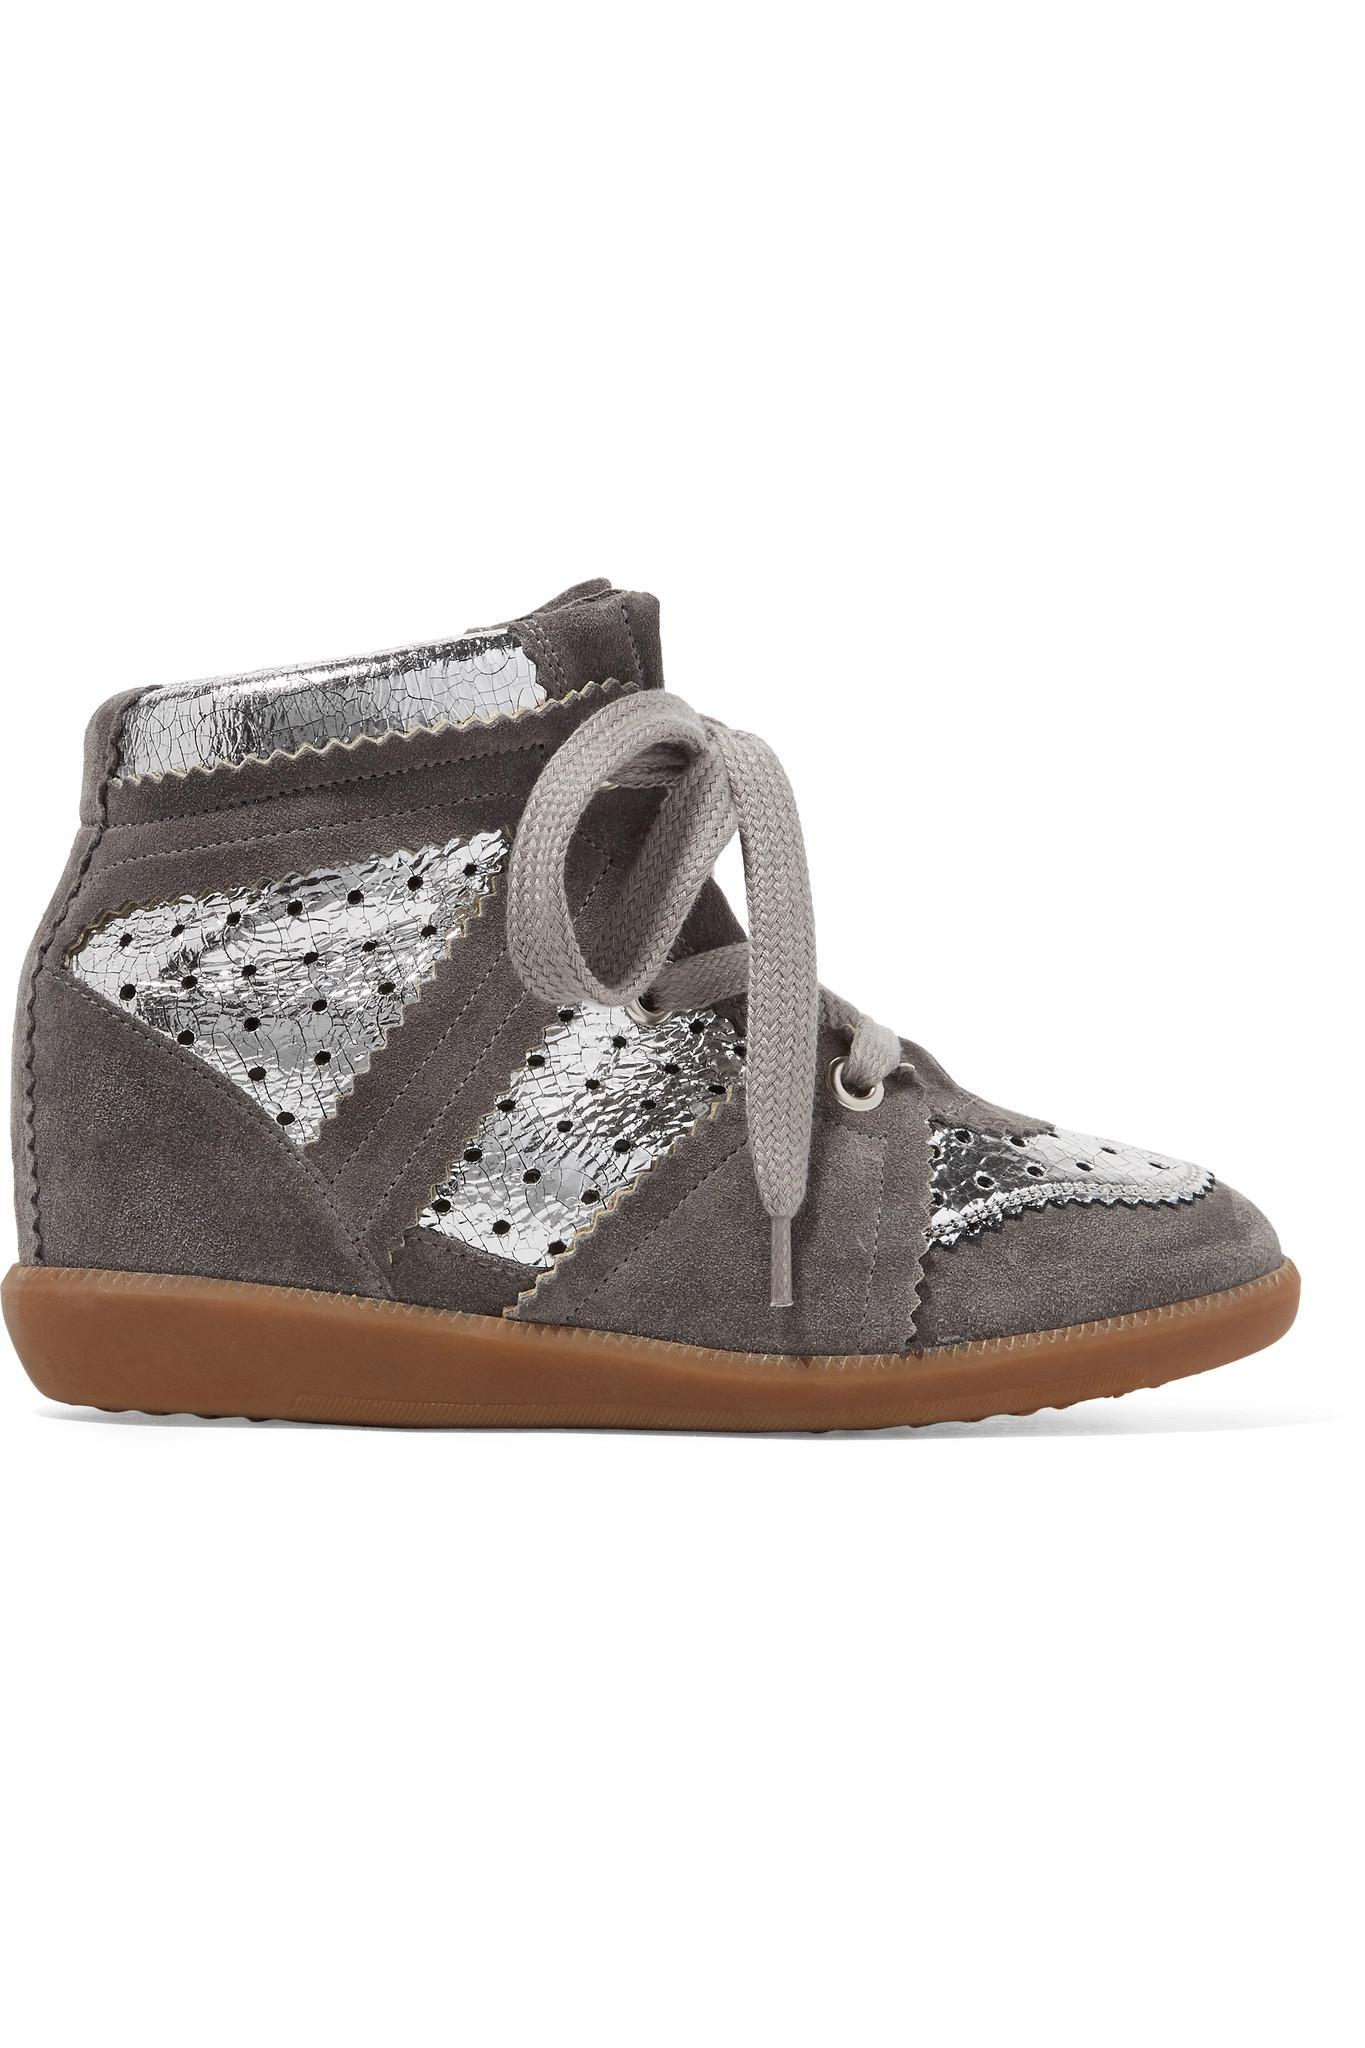 best loved ae672 3c2cf isabel-marant-silver-Bobby-Perforated-Metallic-Leather-And-Suede-Wedge-Sneakers.jpeg